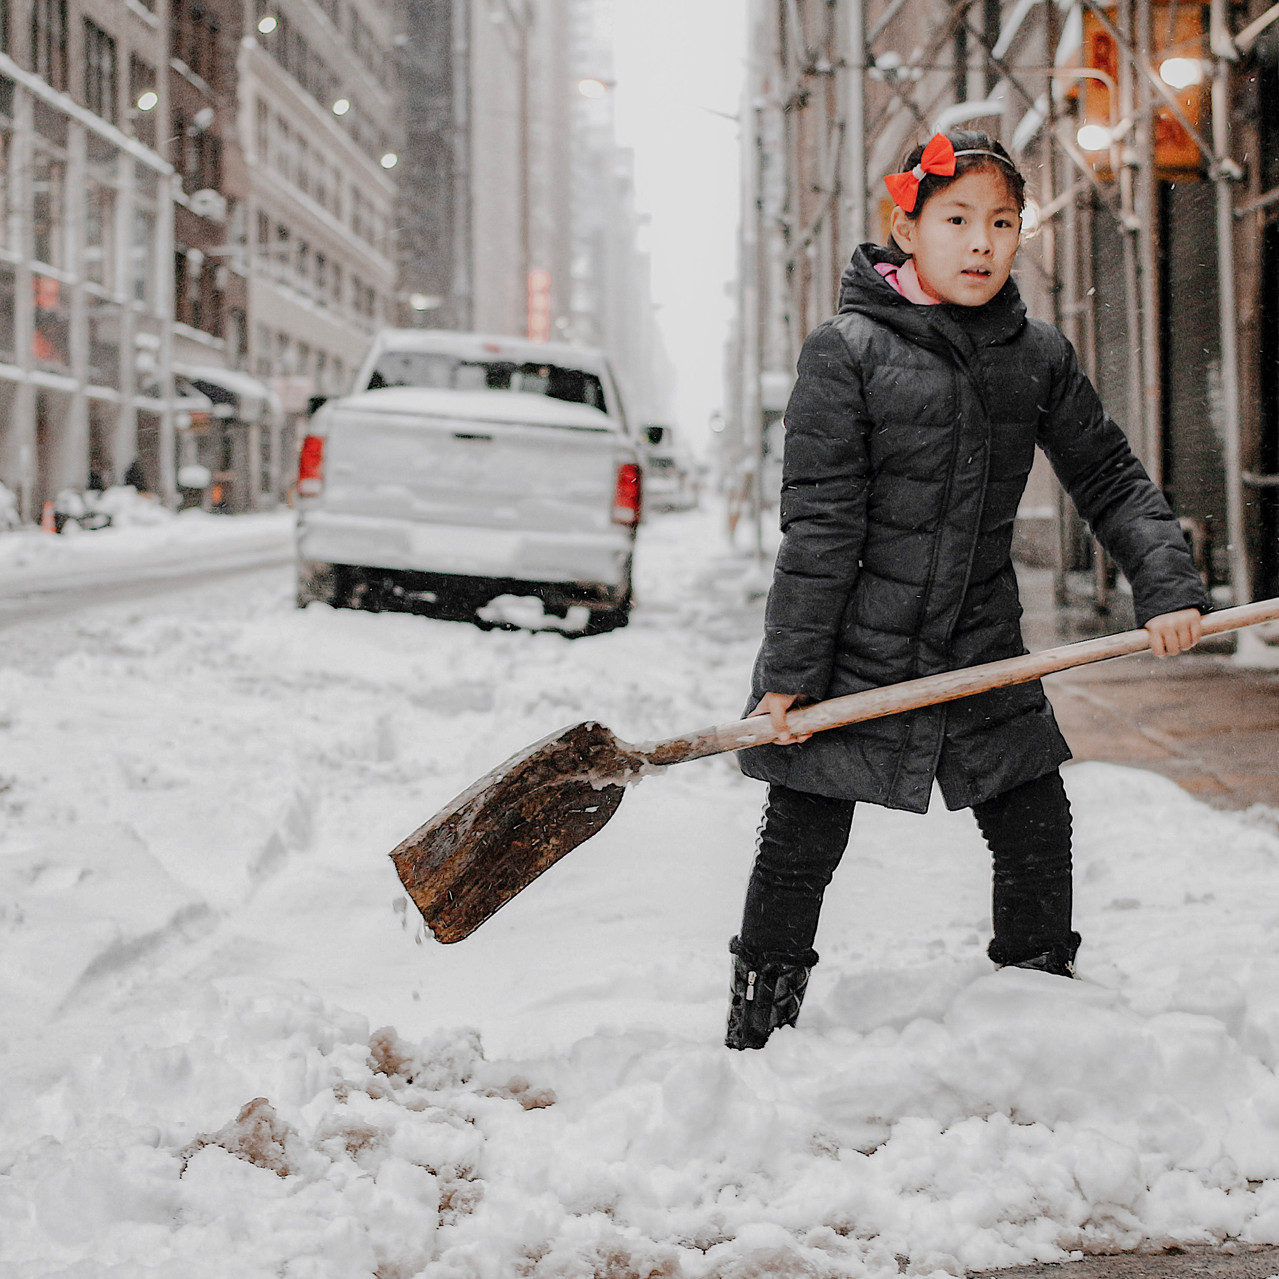 Girl Cleaning Snow